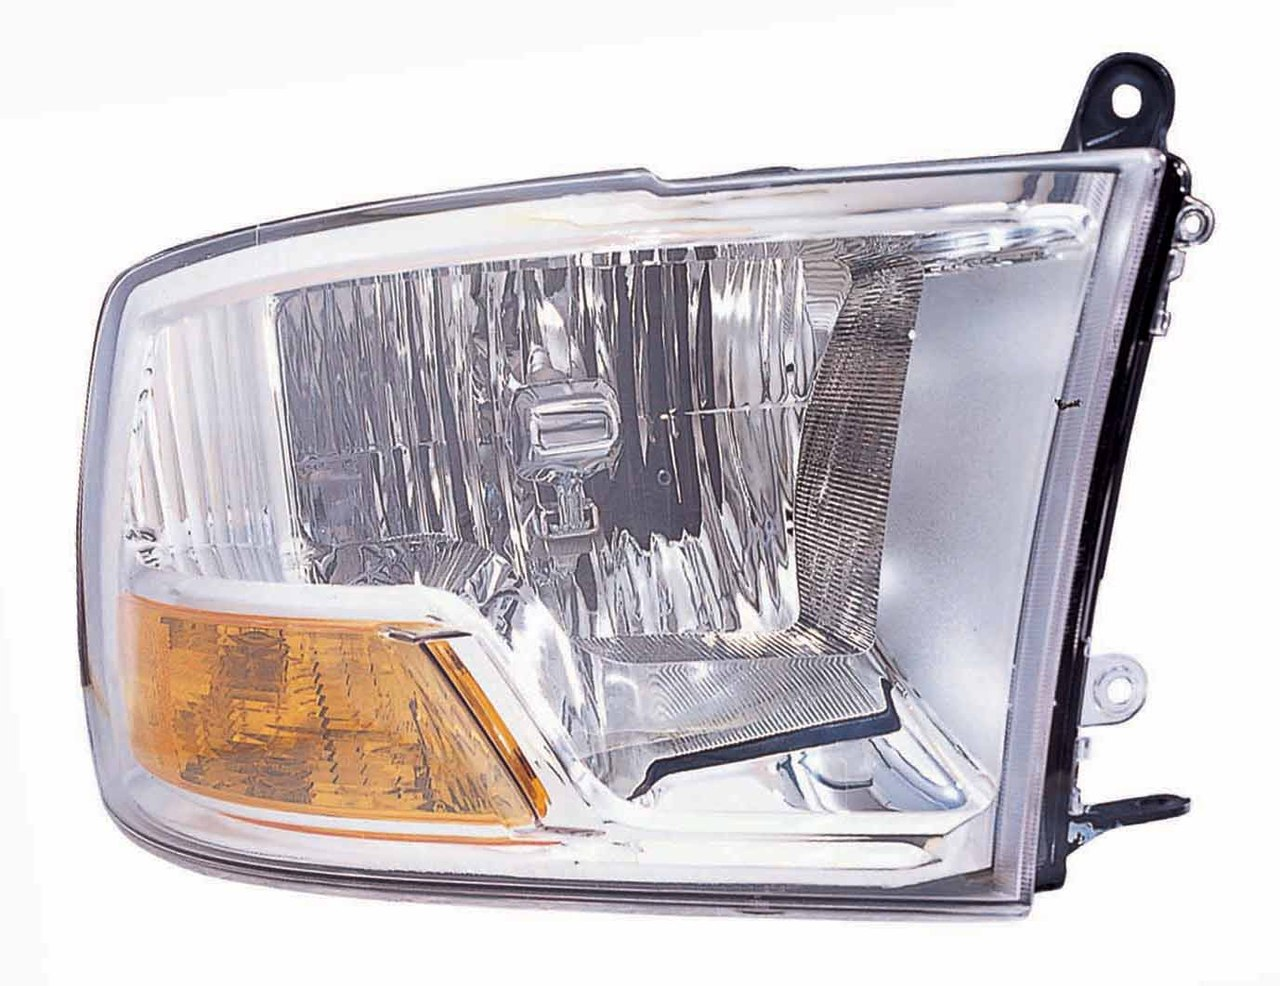 Dodge RAM 1500/2500/3500 2010 2011 2012 2013 2014 2015 right passenger headlight (no quad lamp)